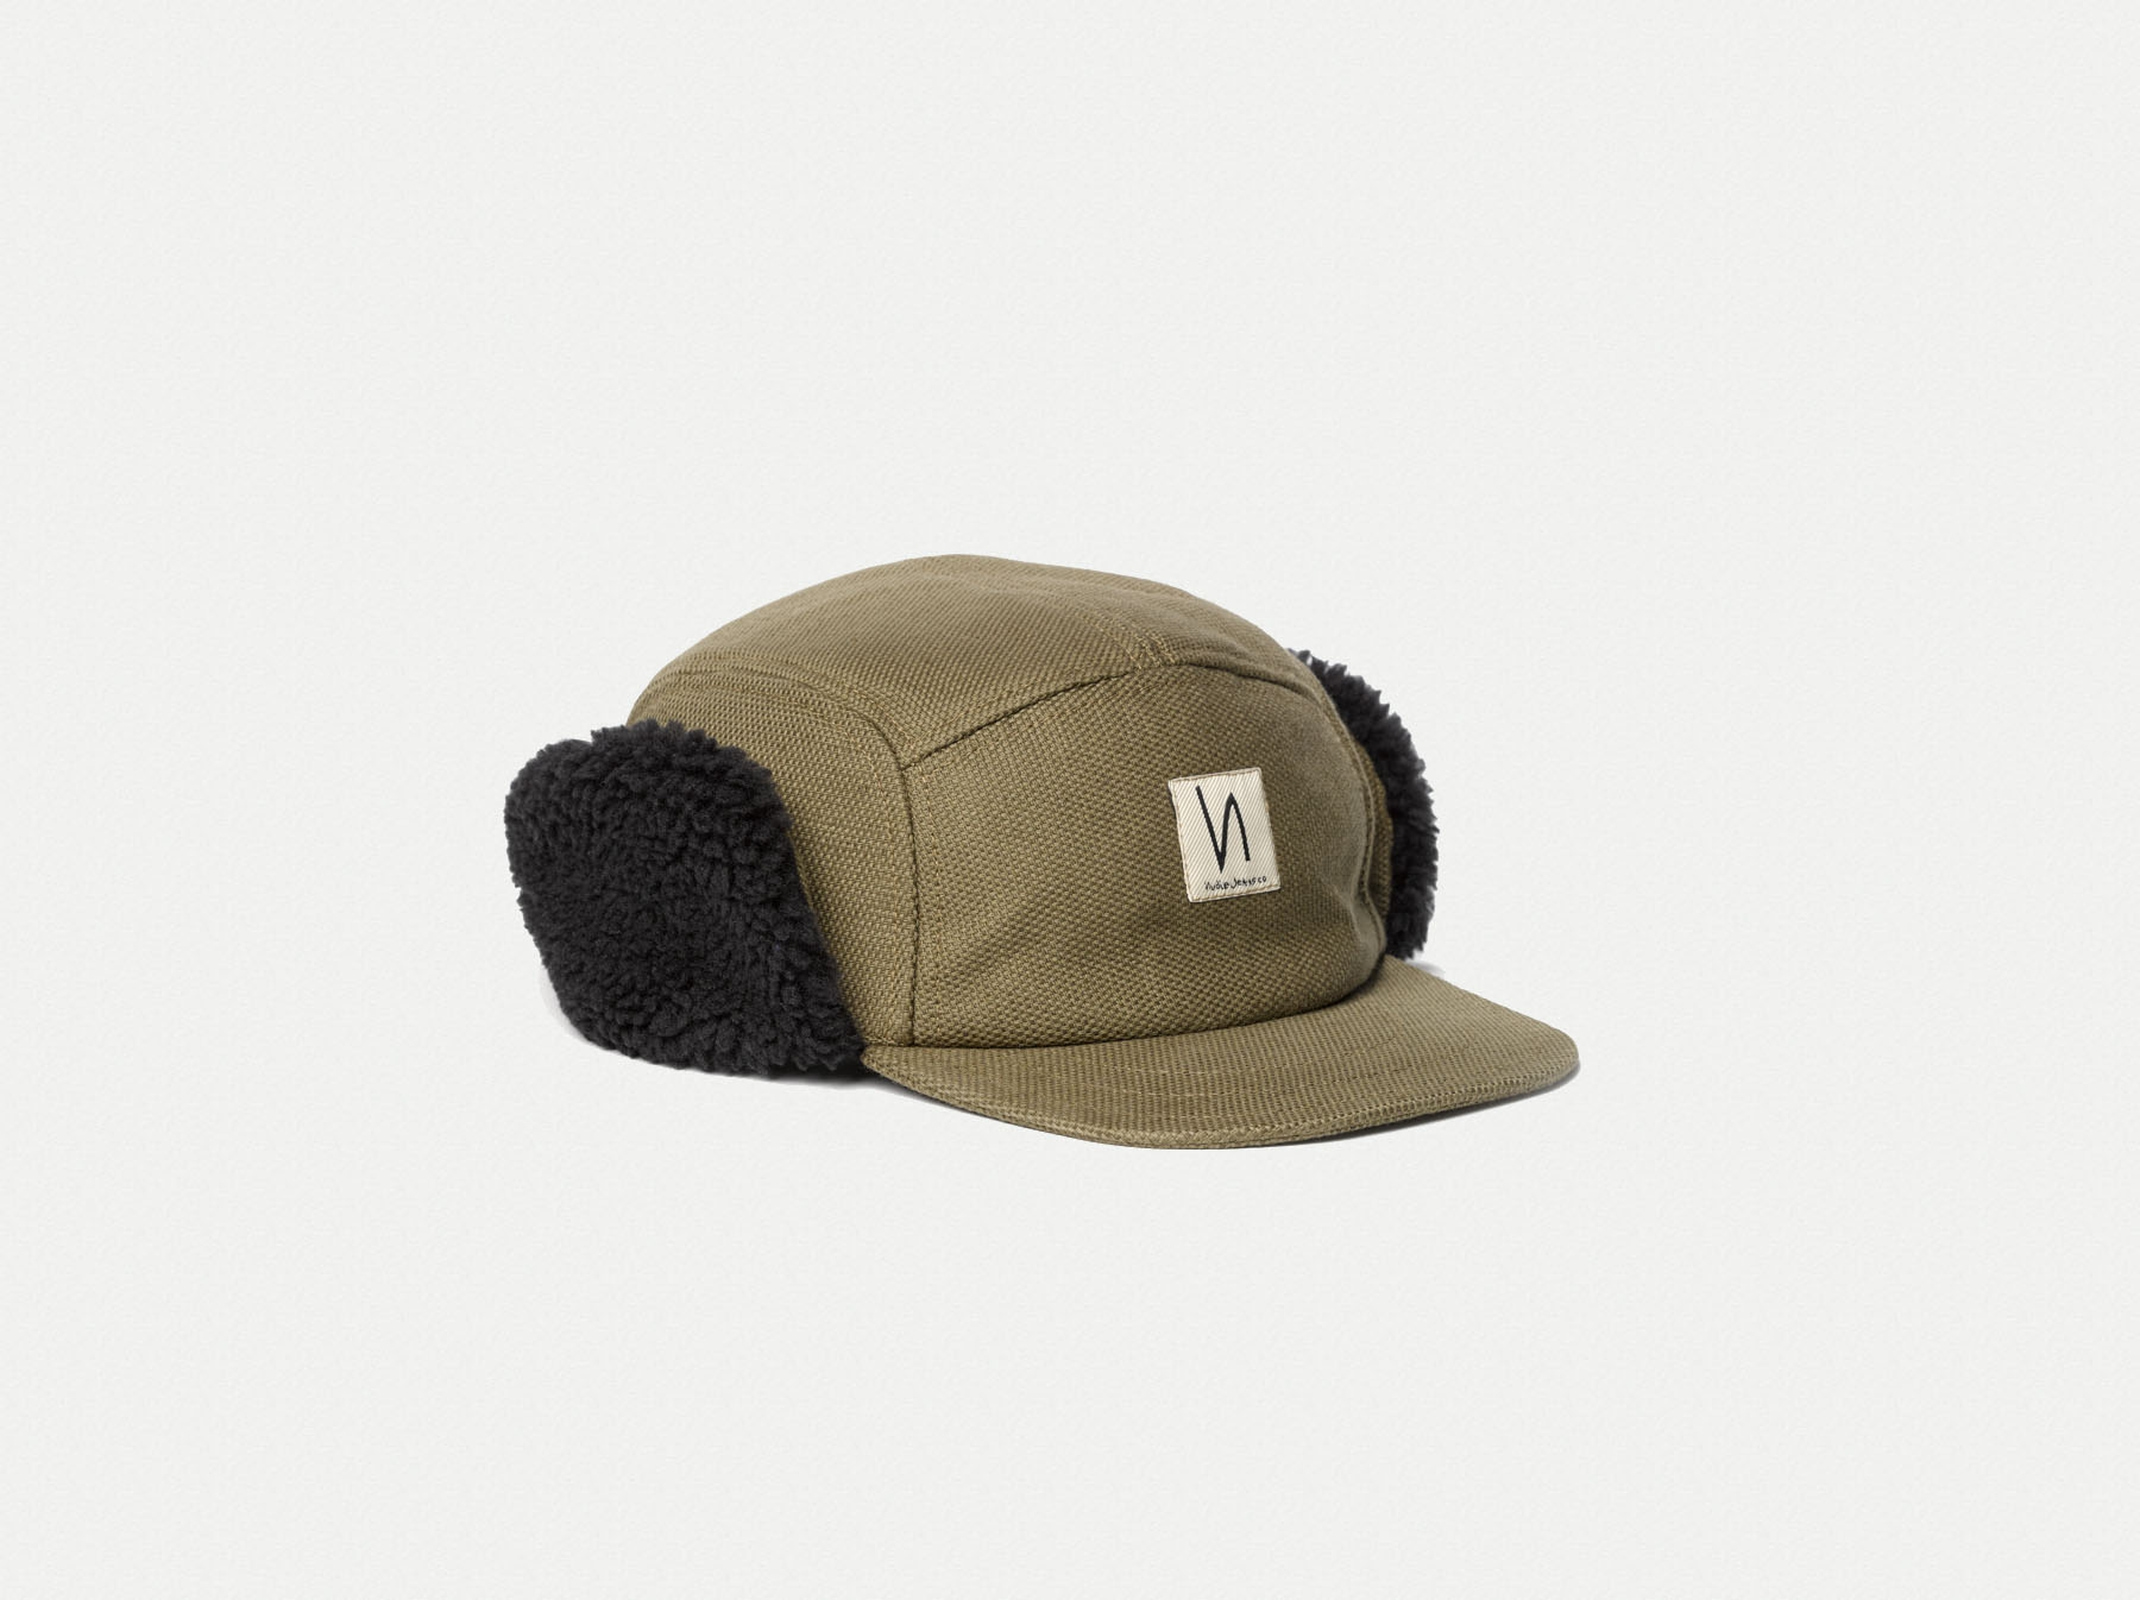 4f617e0a Buy Larsson Hunter Cap Brown. Please enable JavaScript to buy this product.